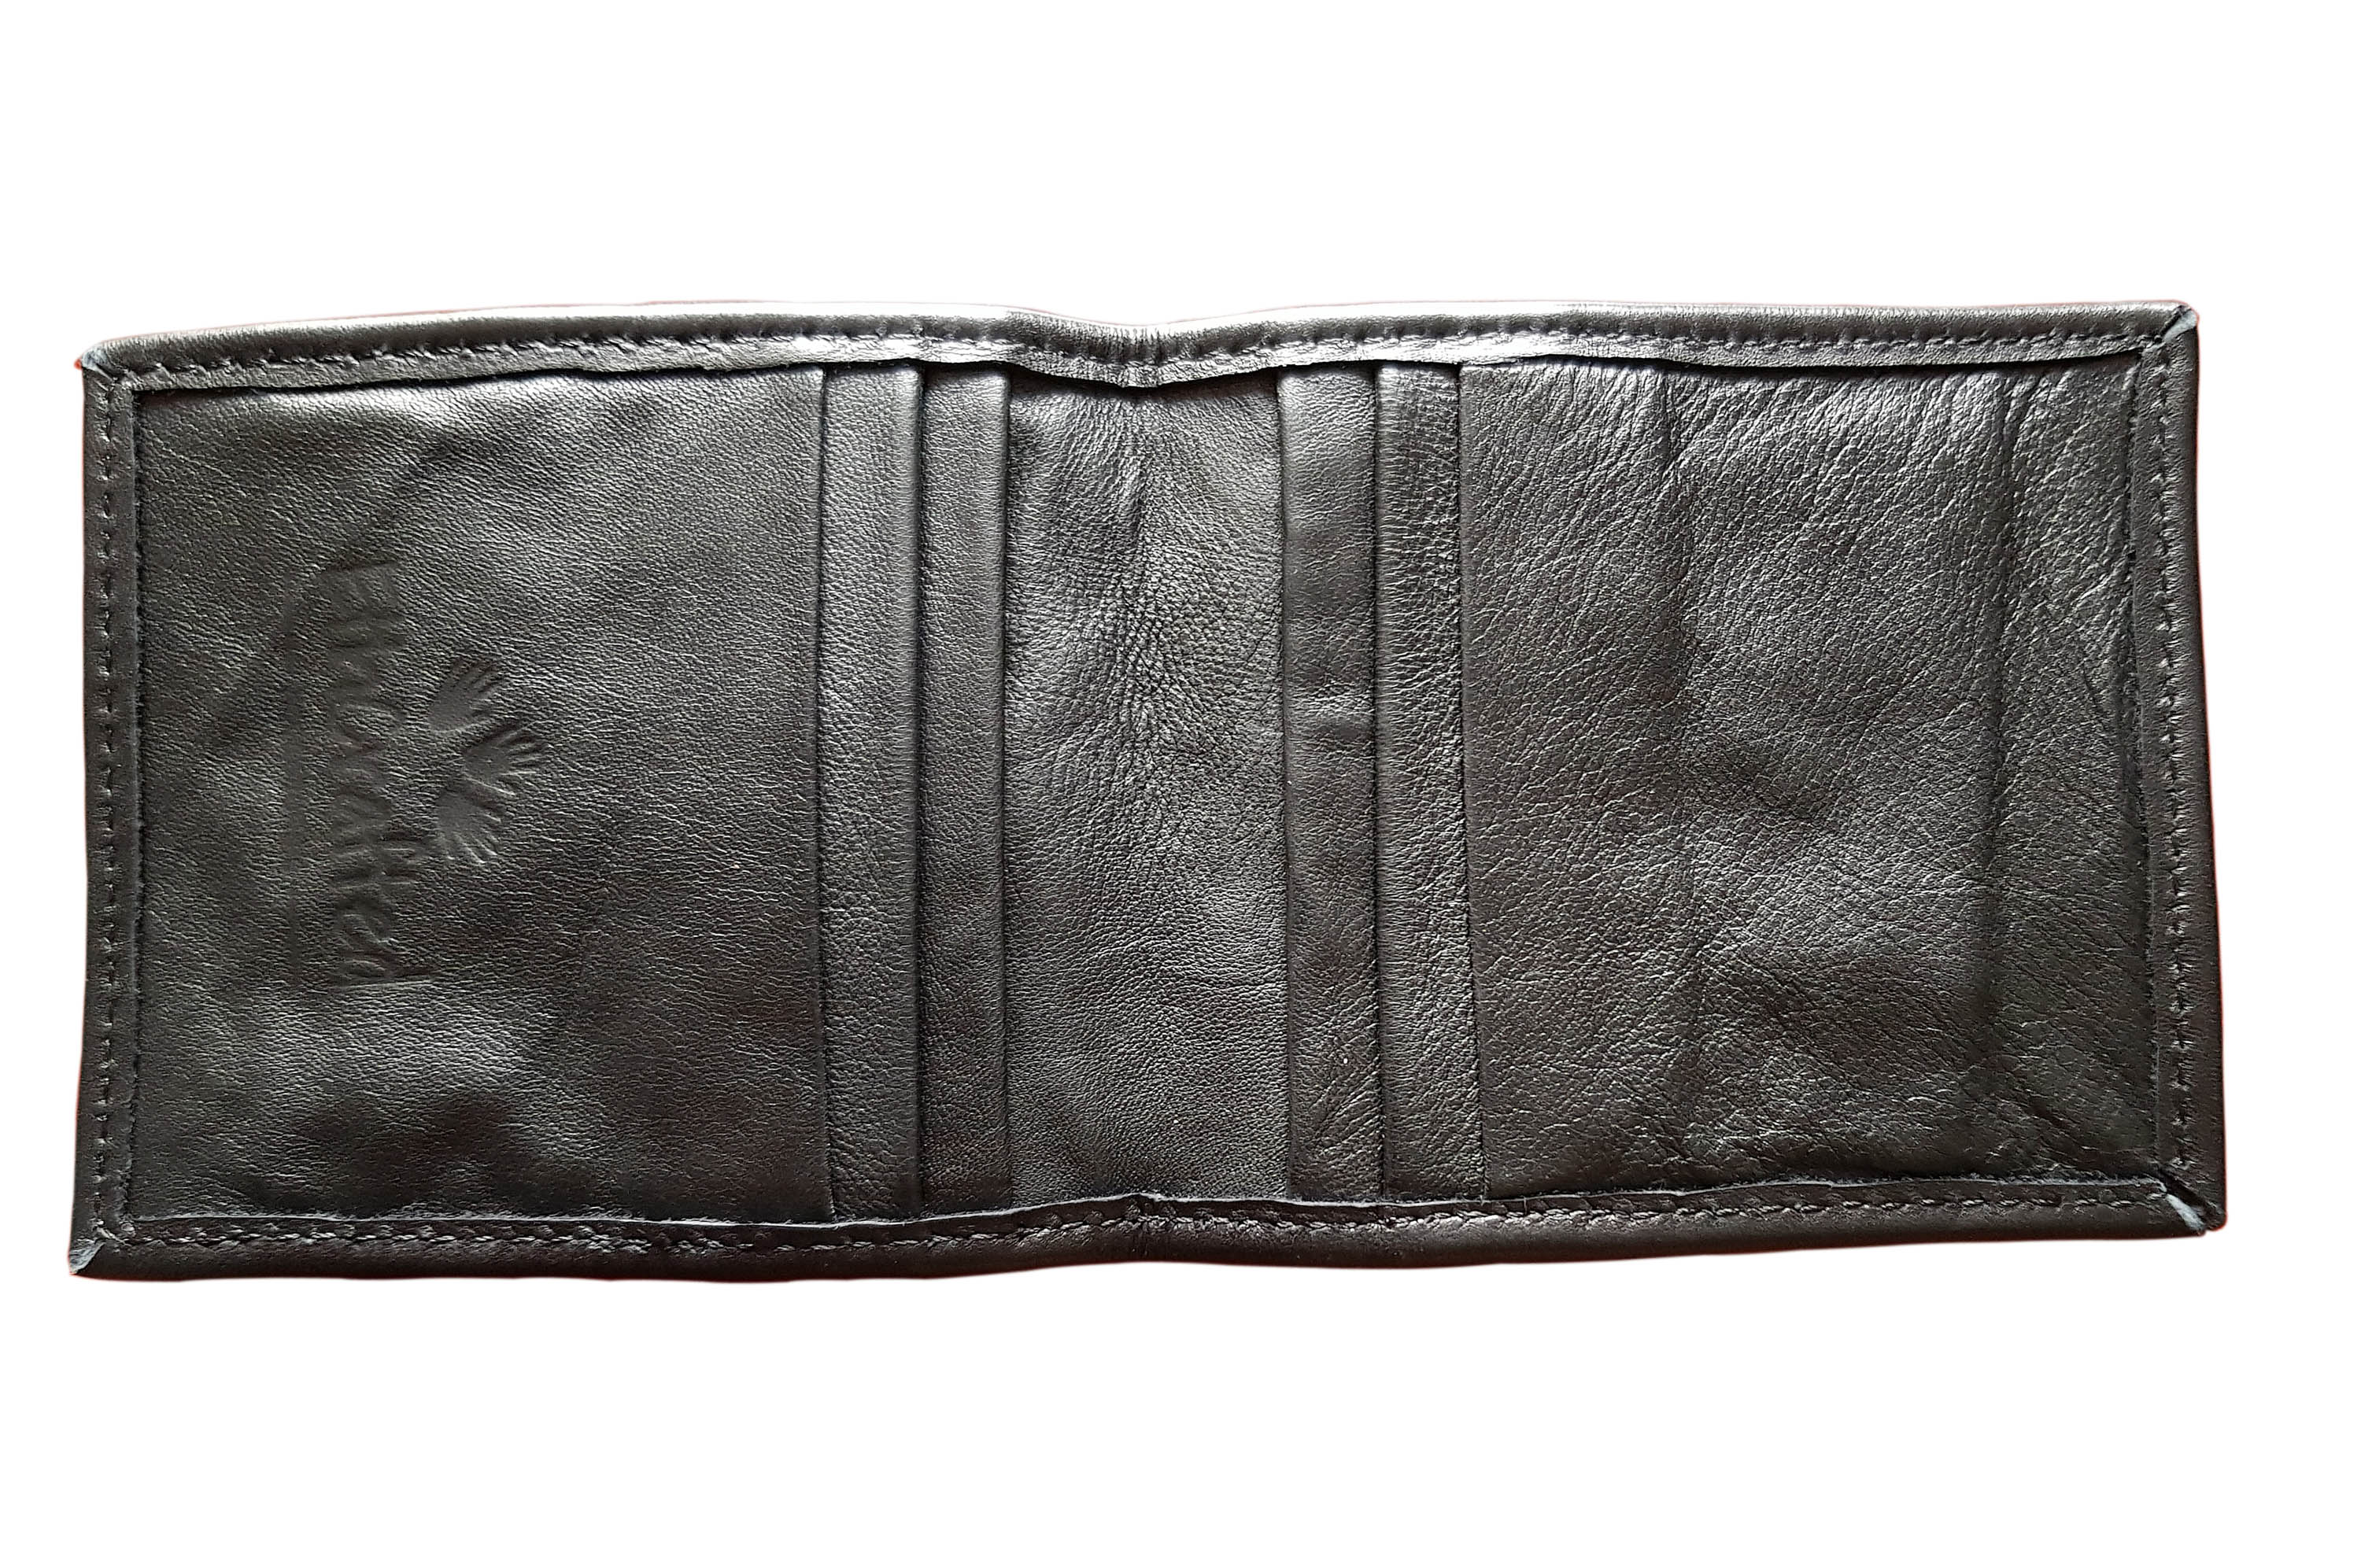 EthCrafted Mini Cardholder from EthCrafted Accessories